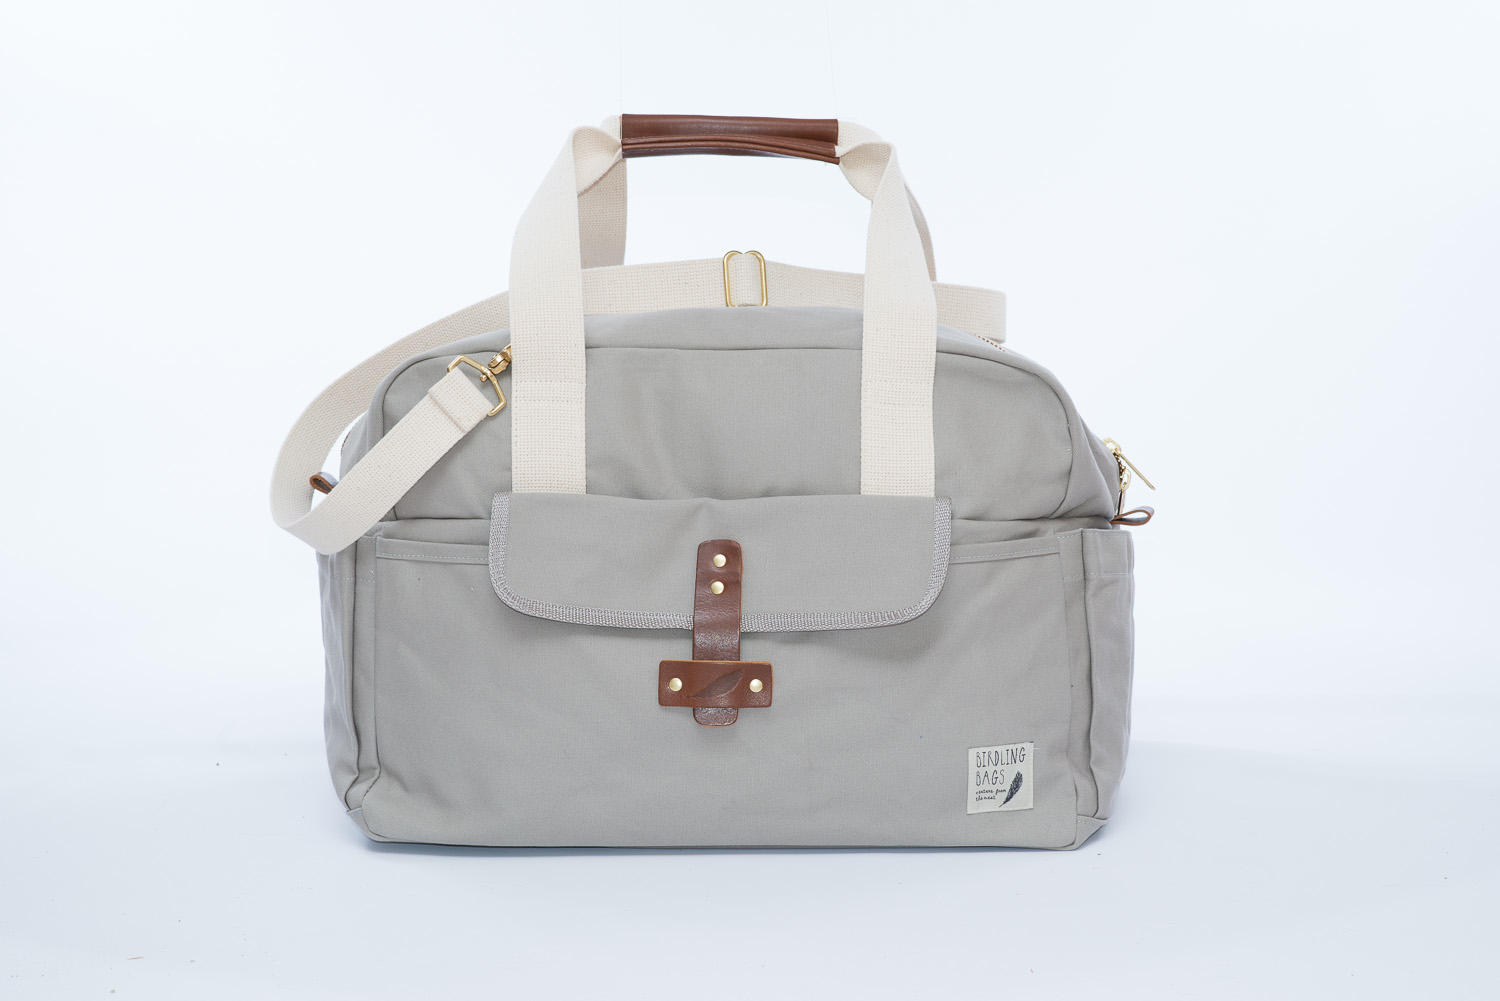 Must-Have of the Month: Birdling Bags